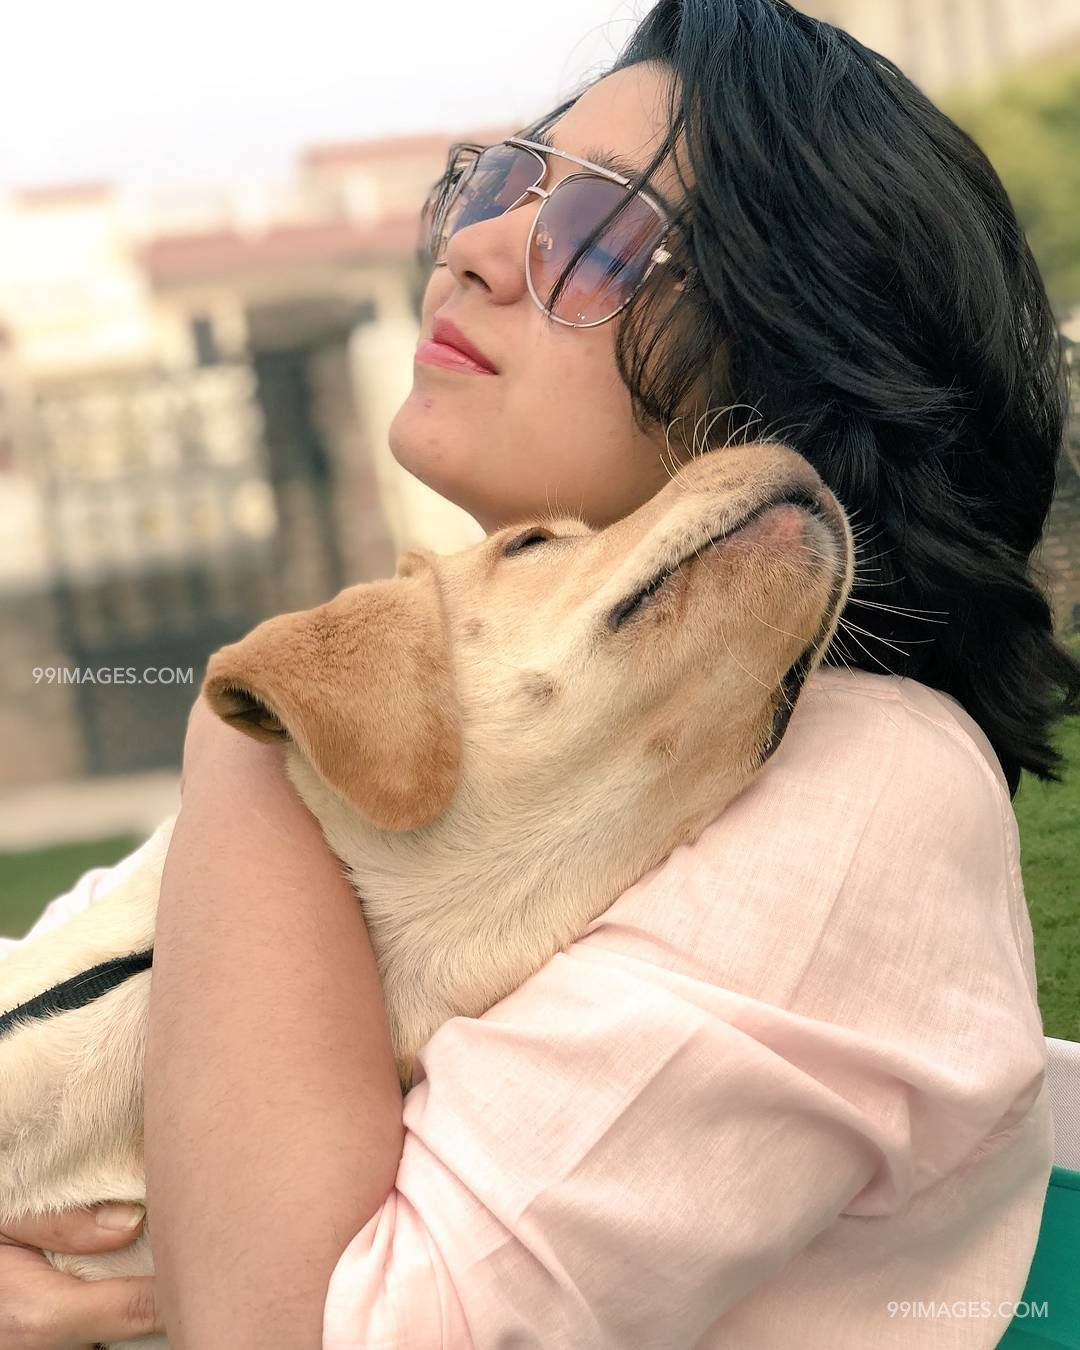 Charmy Kaur Beautiful Photos & Mobile Wallpapers HD (Android/iPhone) (1080p) (25971) - Charmy Kaur